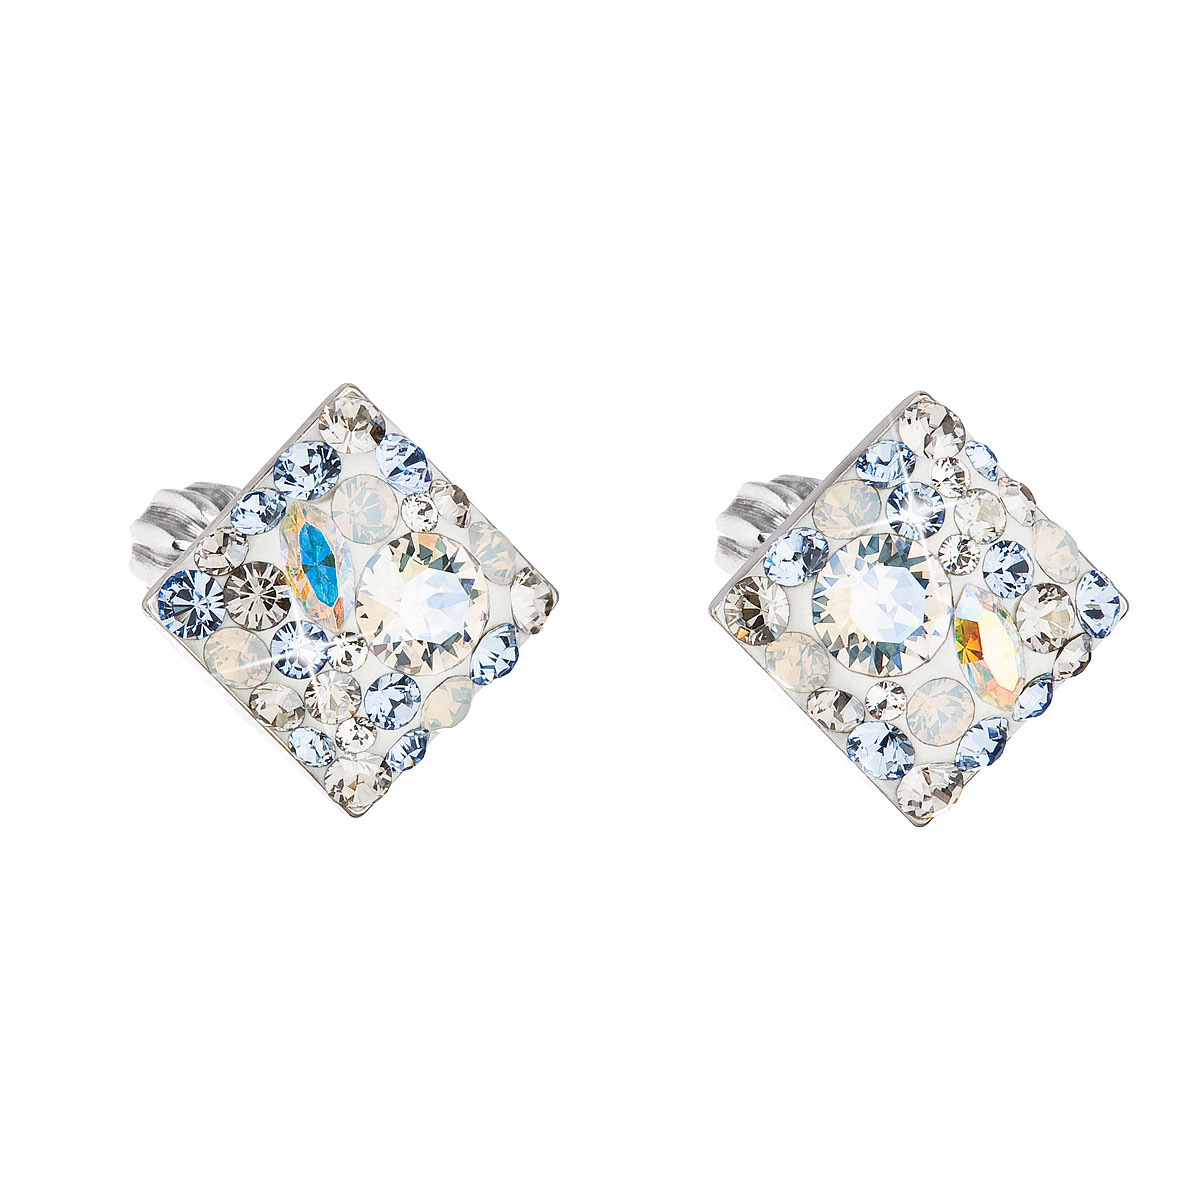 Sterling silver earrings with Swarovski crystals  blue rhombus  light sapphire 31169.3